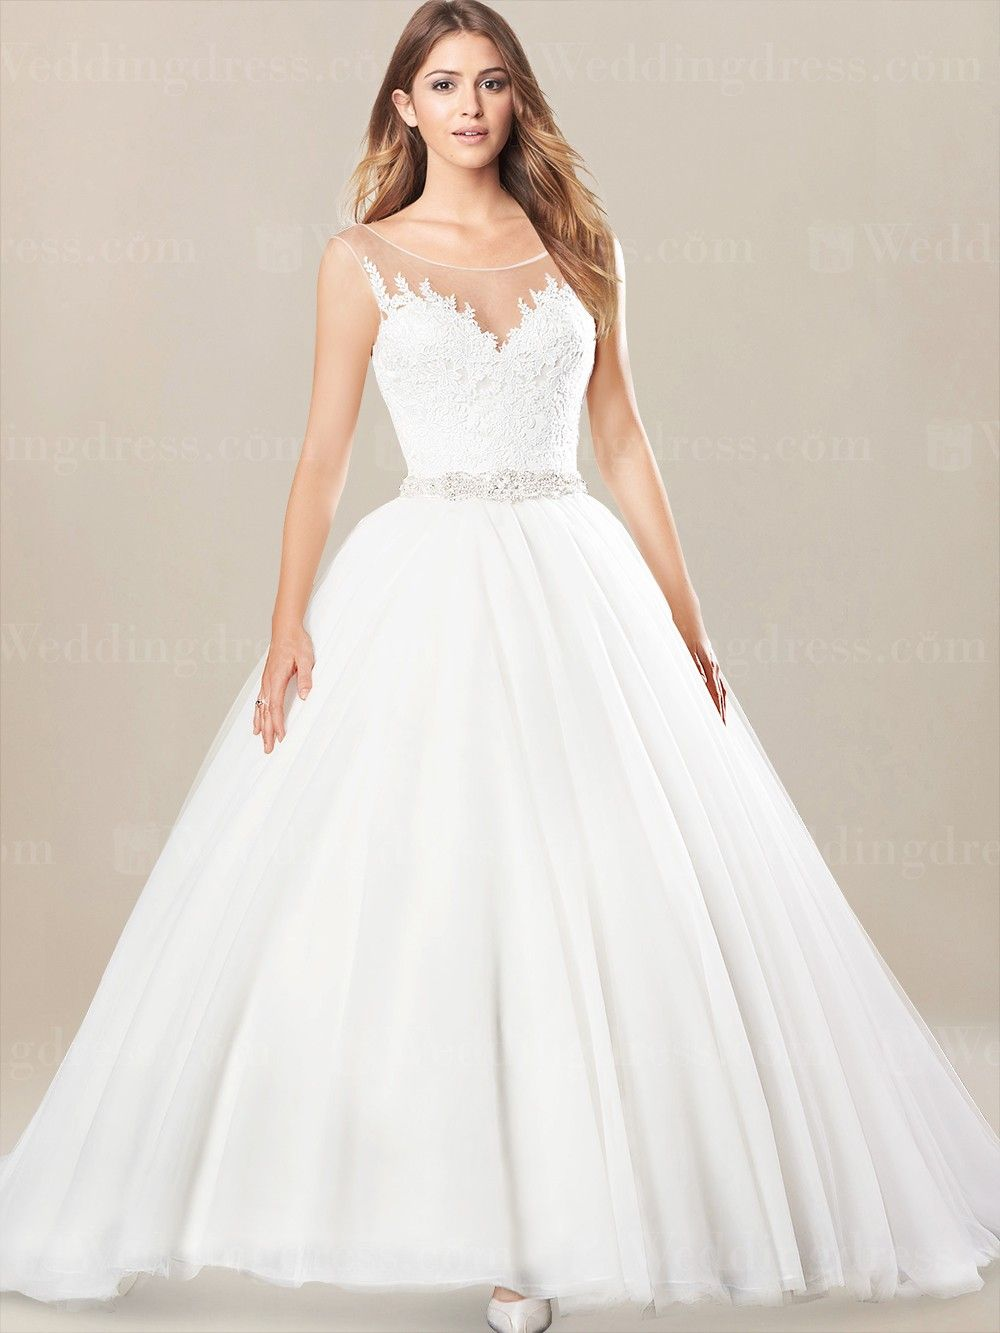 Unique ball gown wedding dress de wedding dresses pinterest